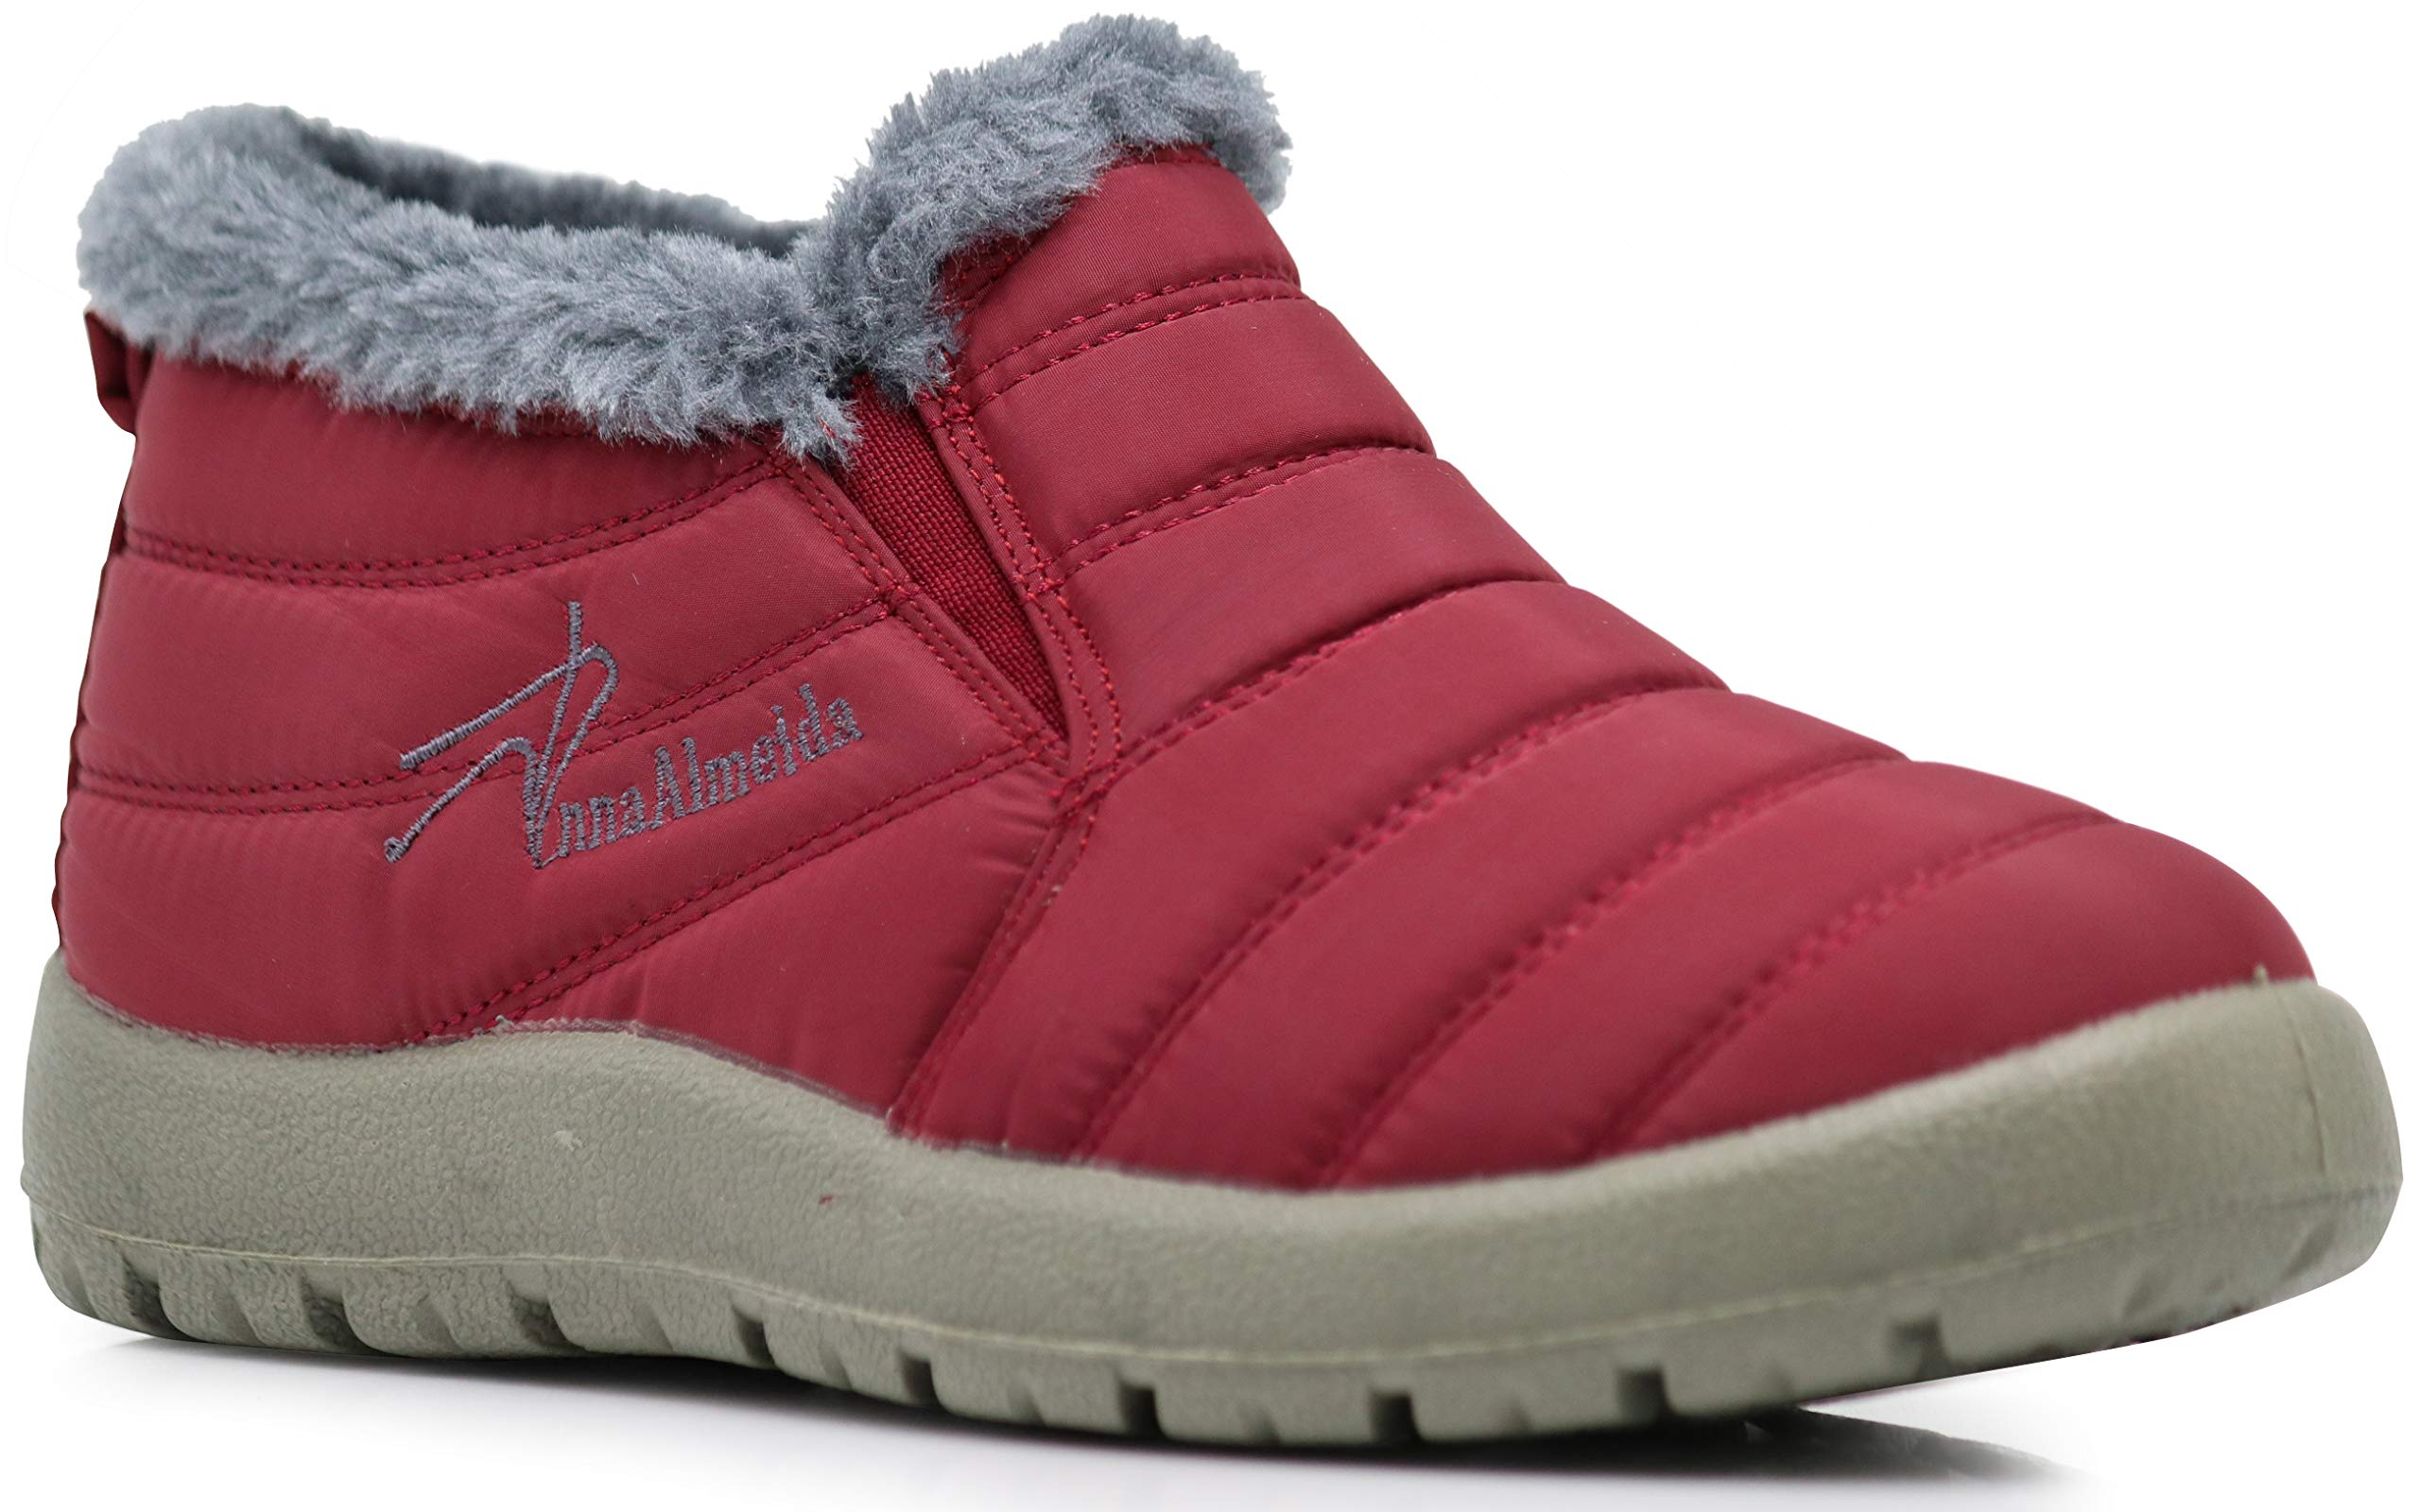 Enzo Romeo Whistler Womens Anti-Slip Winter Snow Boots with Fully Fur Lined High Ankle Top Shoe (10 B(M) US, Red)